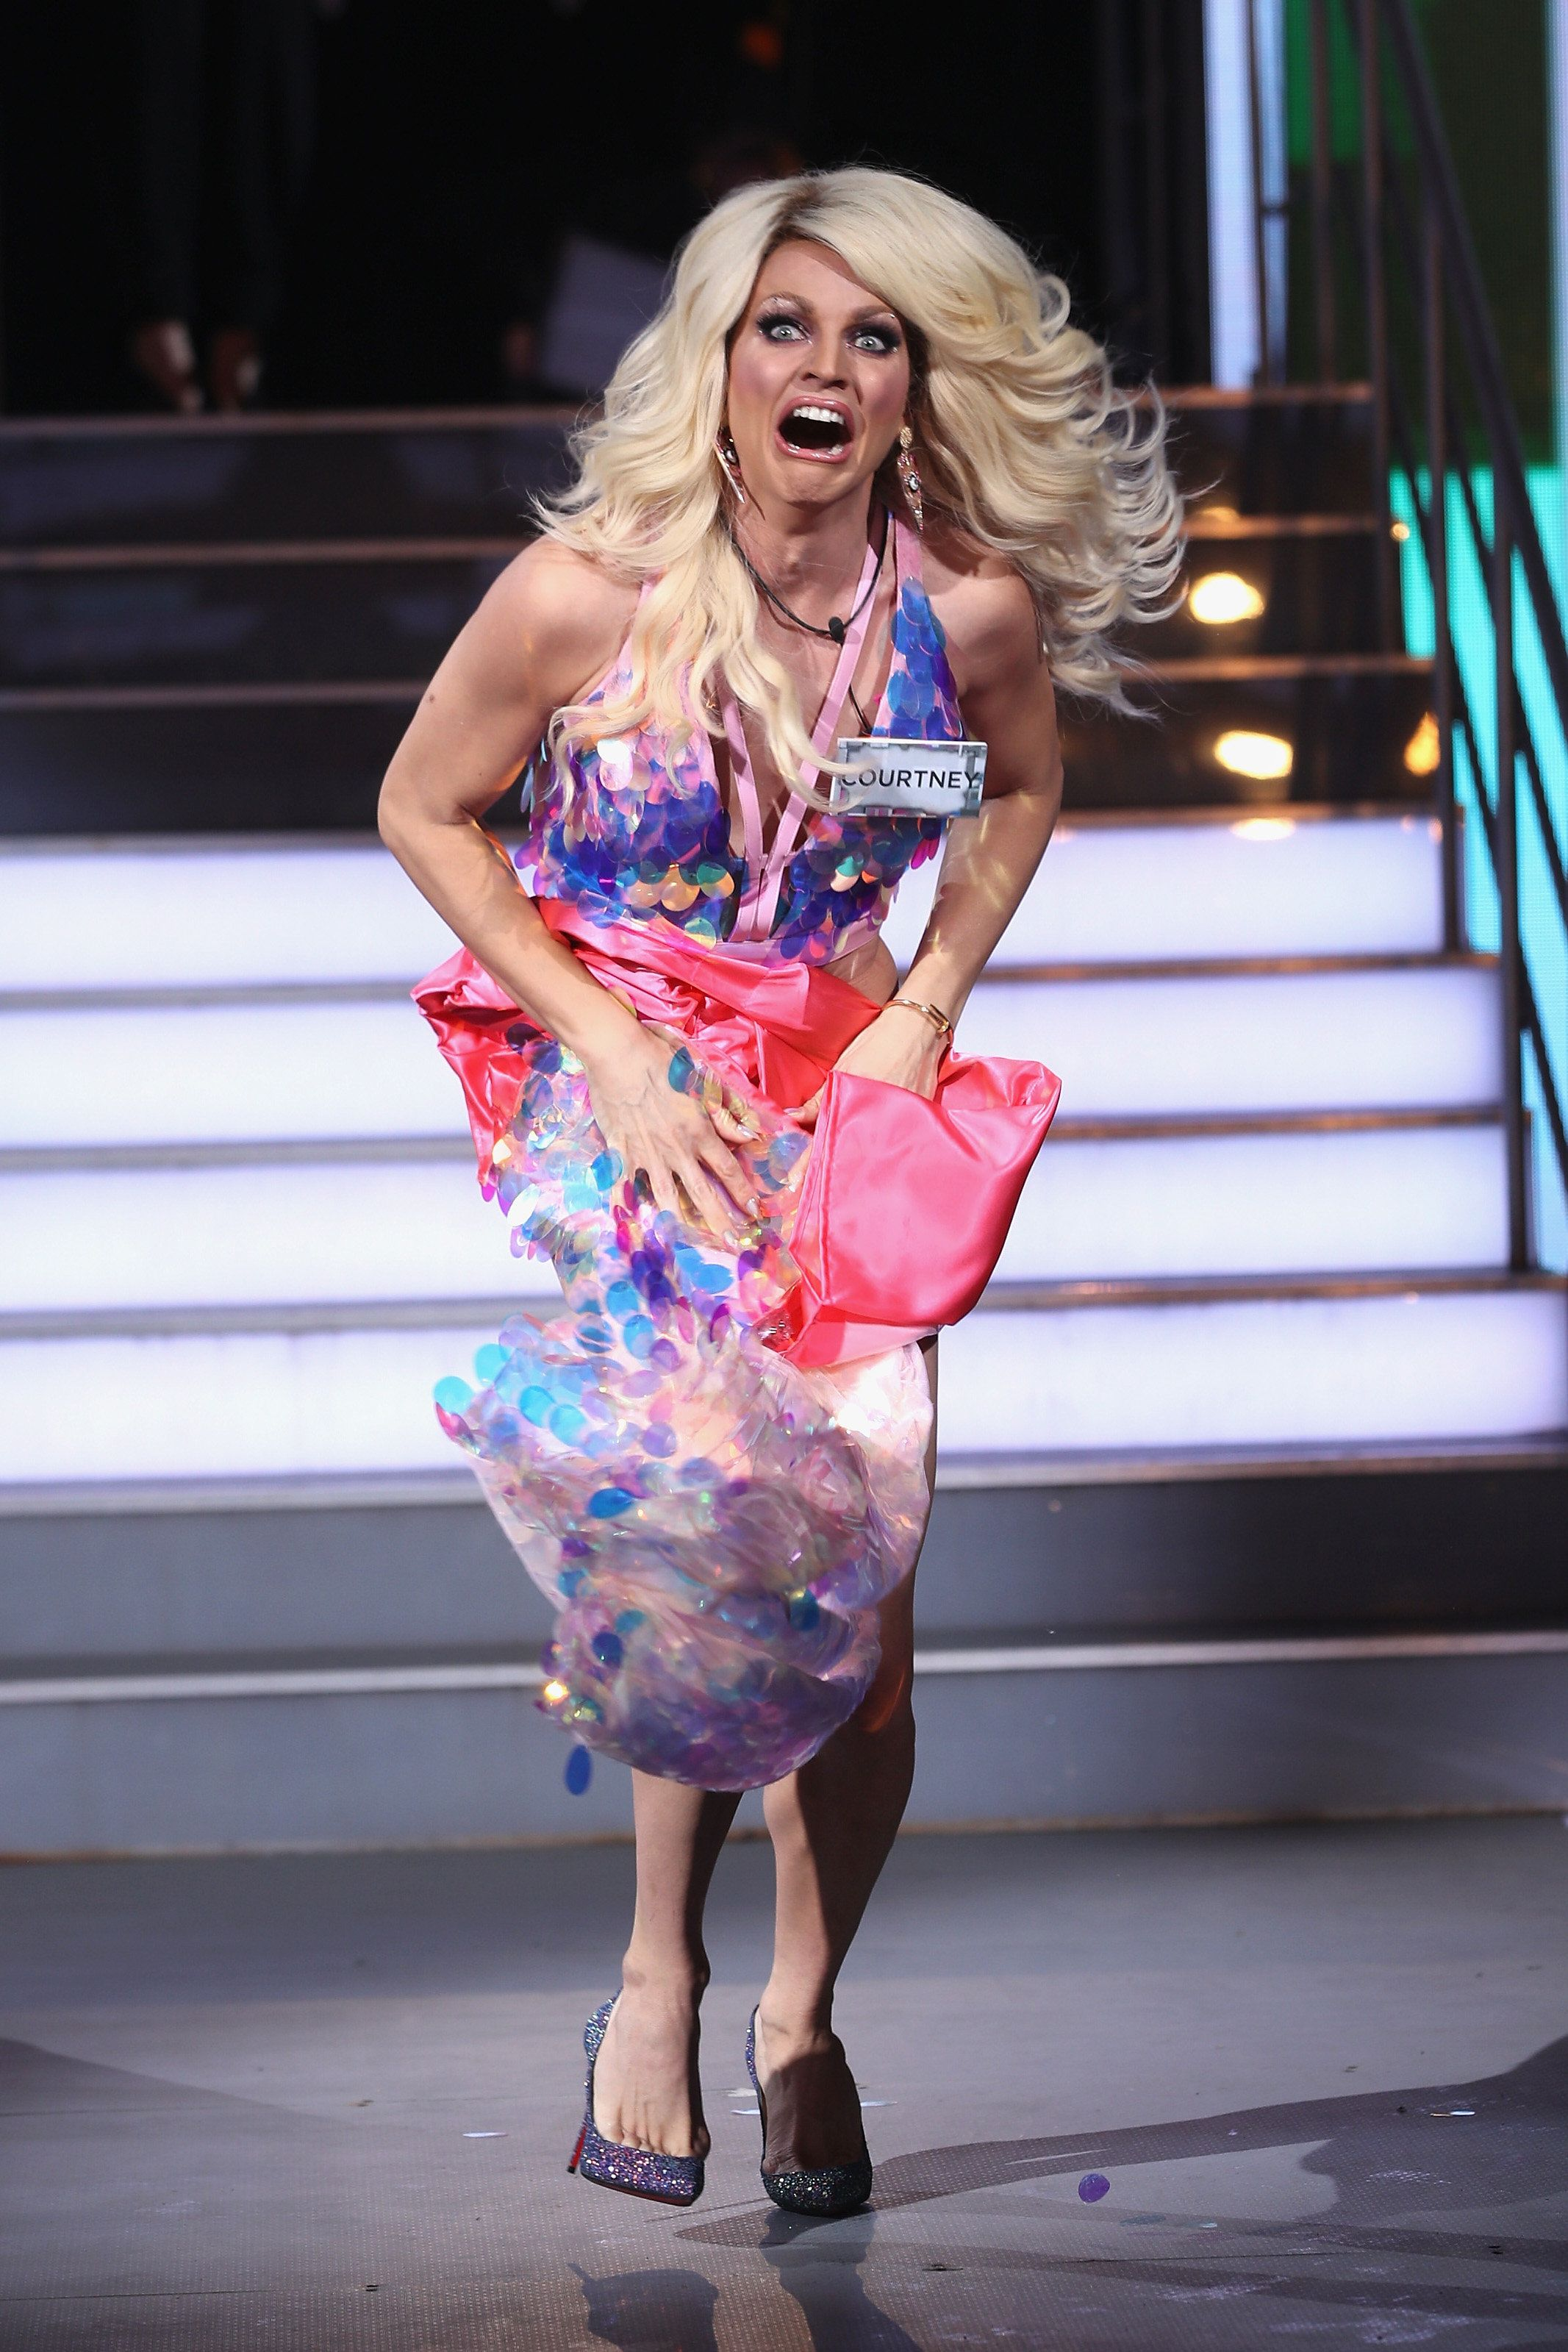 'Celebrity Big Brother' Star Courtney Act Suffers The Mother Of All Wardrobe Malfunctions After Entire...